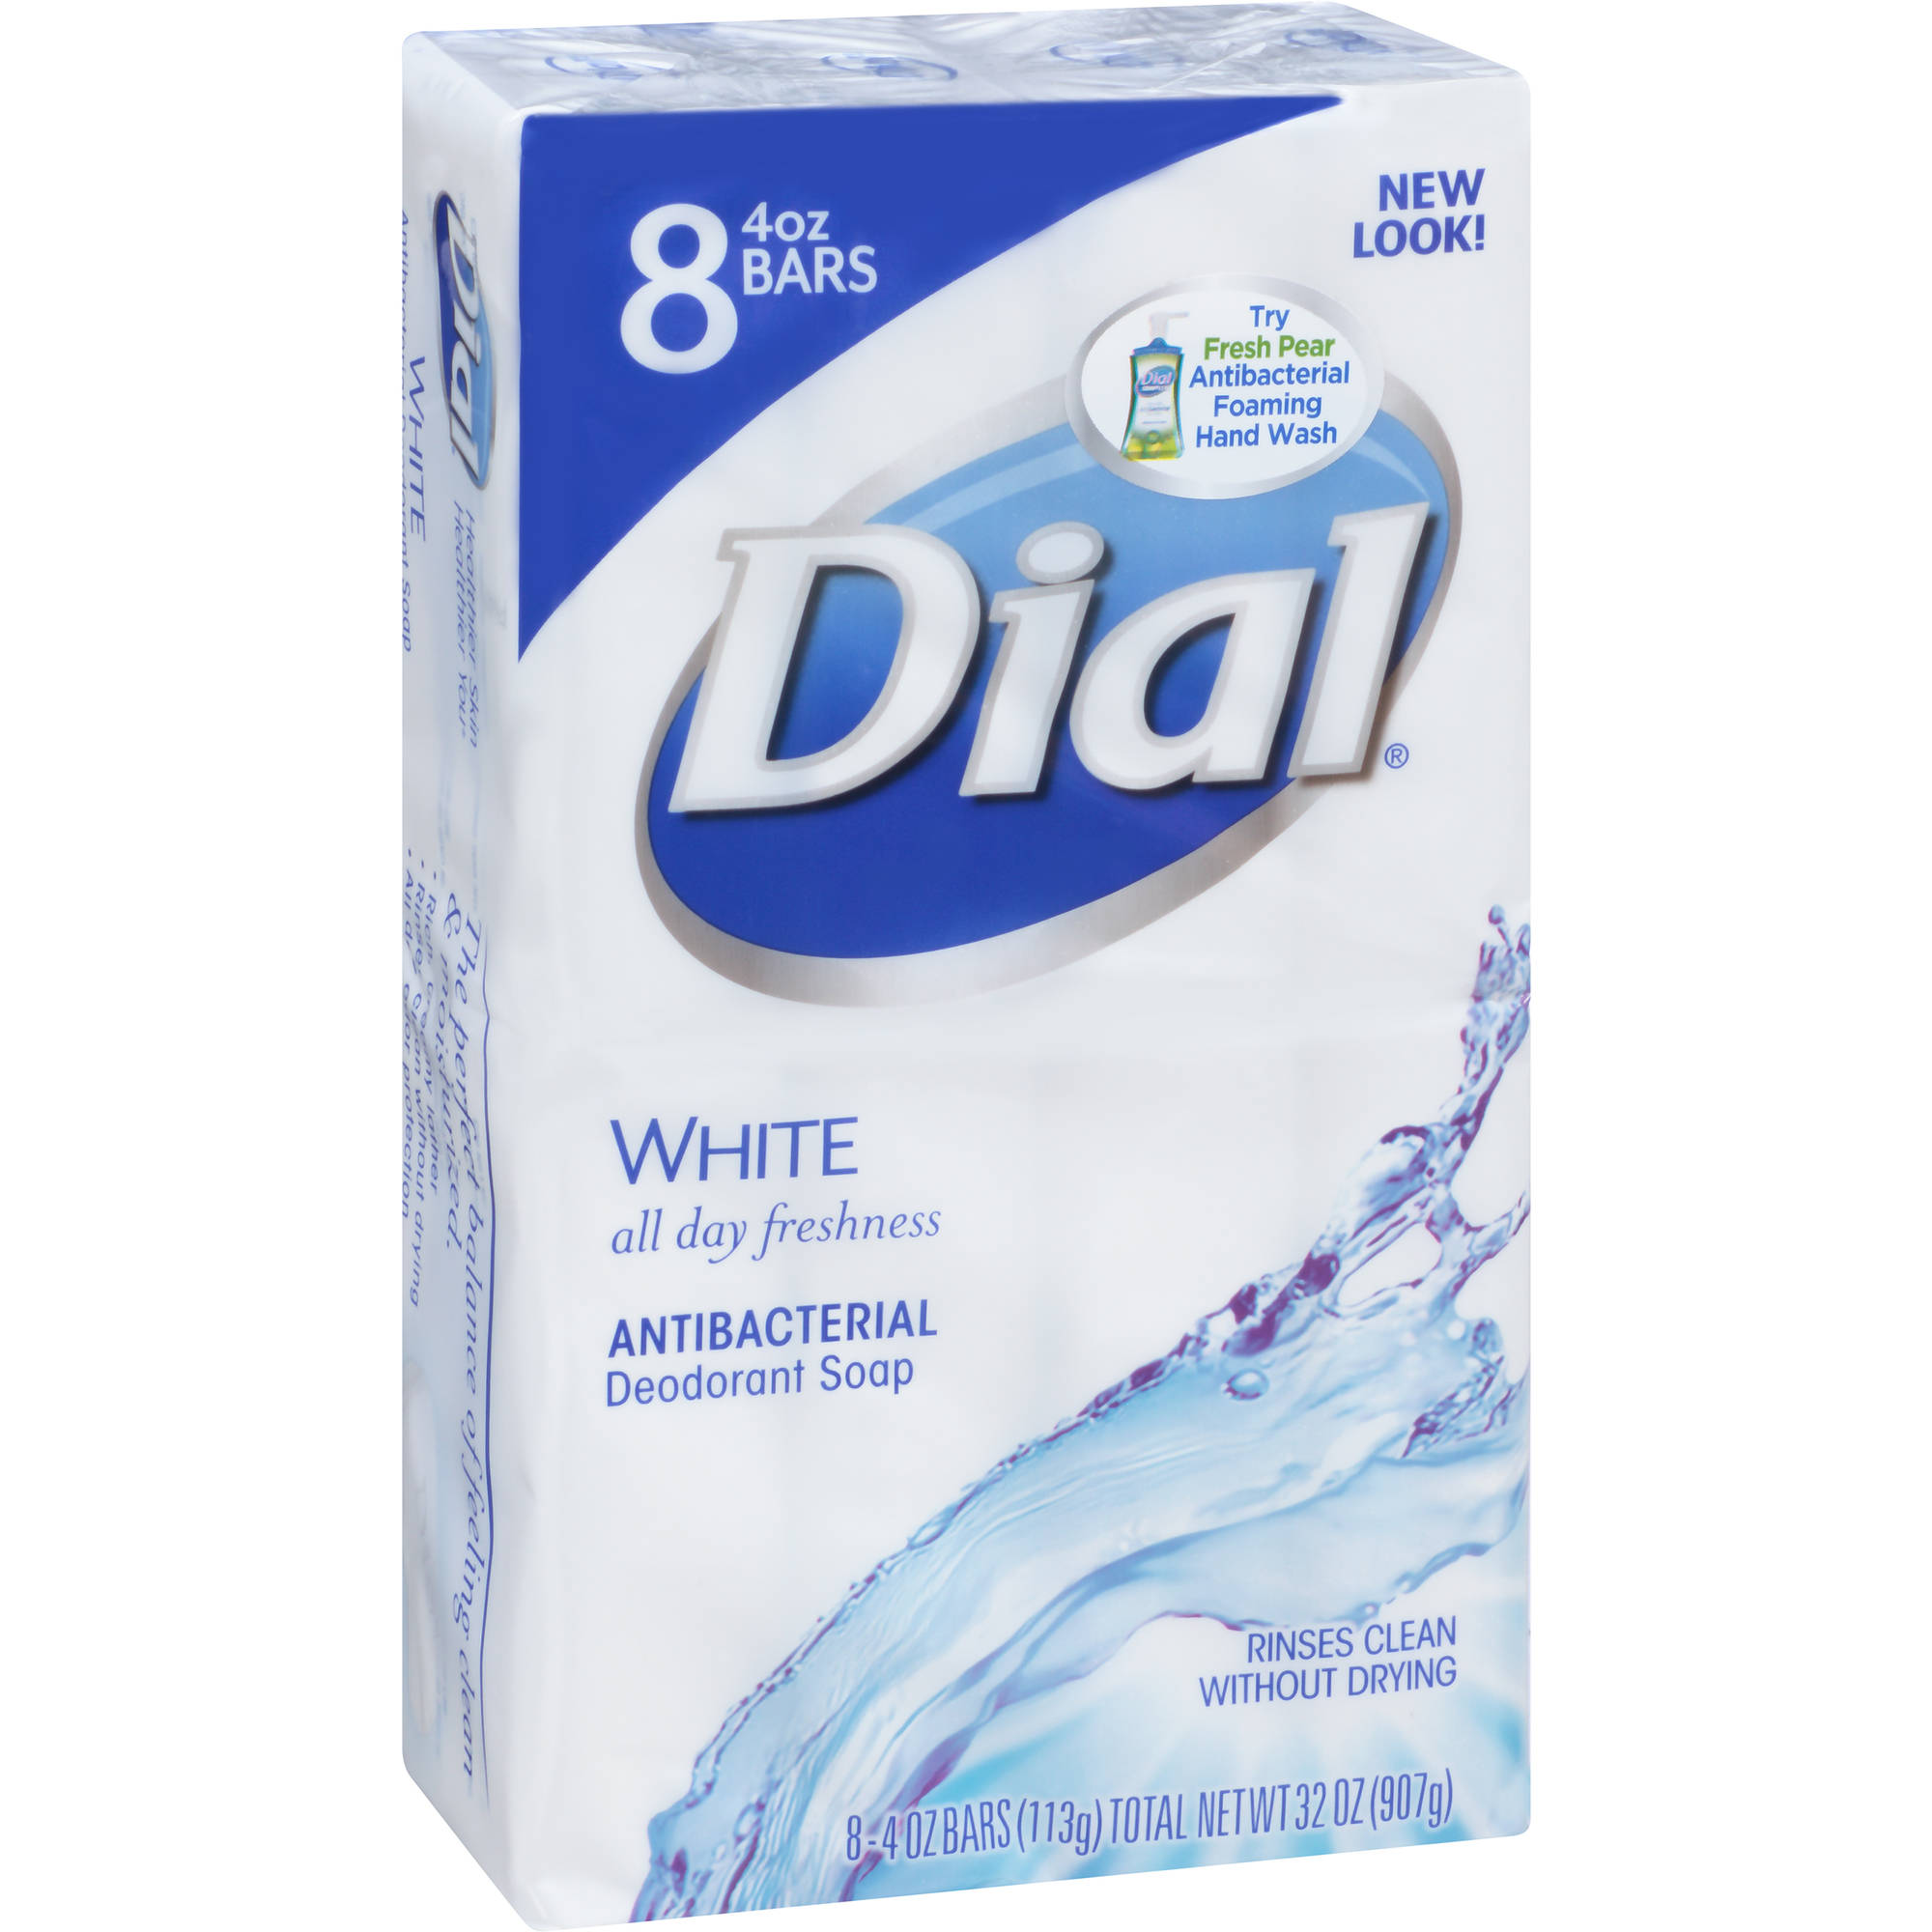 Dial Bar Clean and Refresh White Antibacterial Deodorant Soap Bar, 8ct